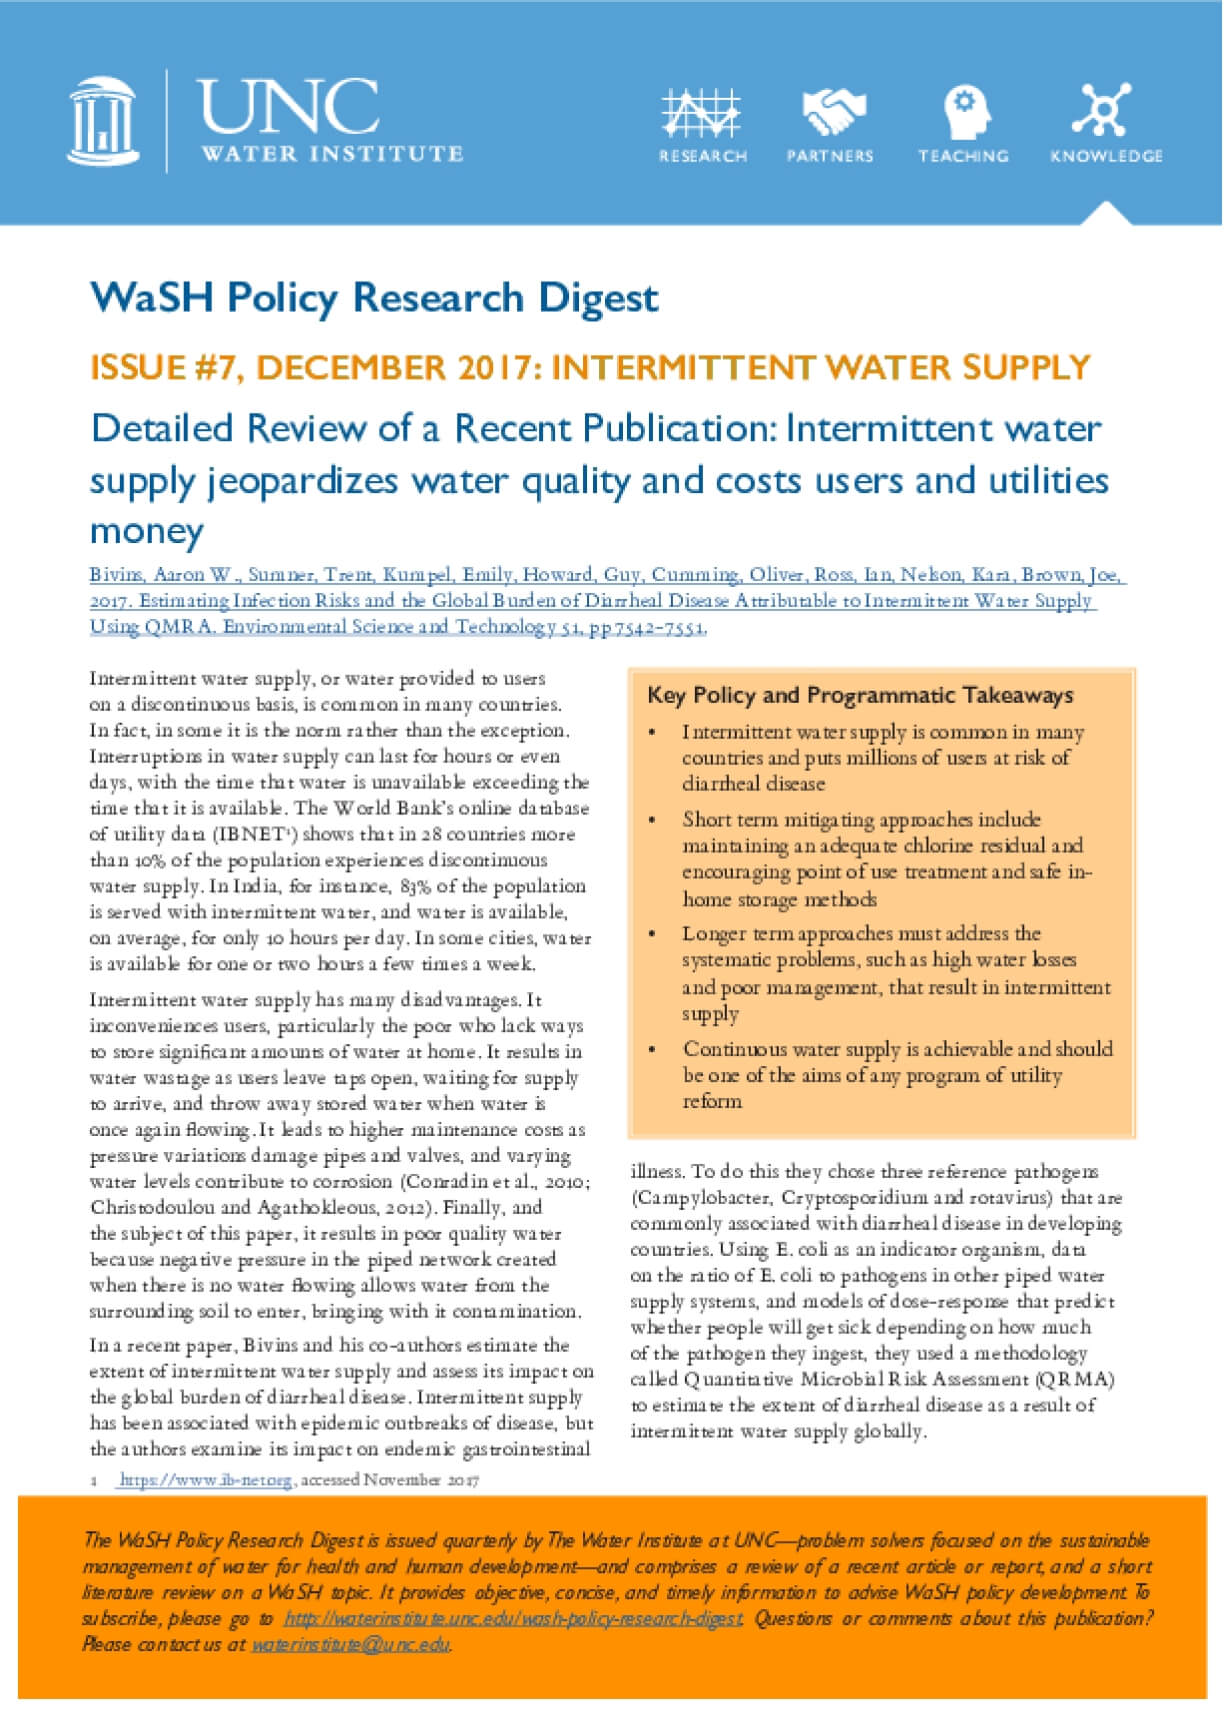 ISSUE #7, DECEMBER 2017: INTERMITTENT WATER SUPPLY